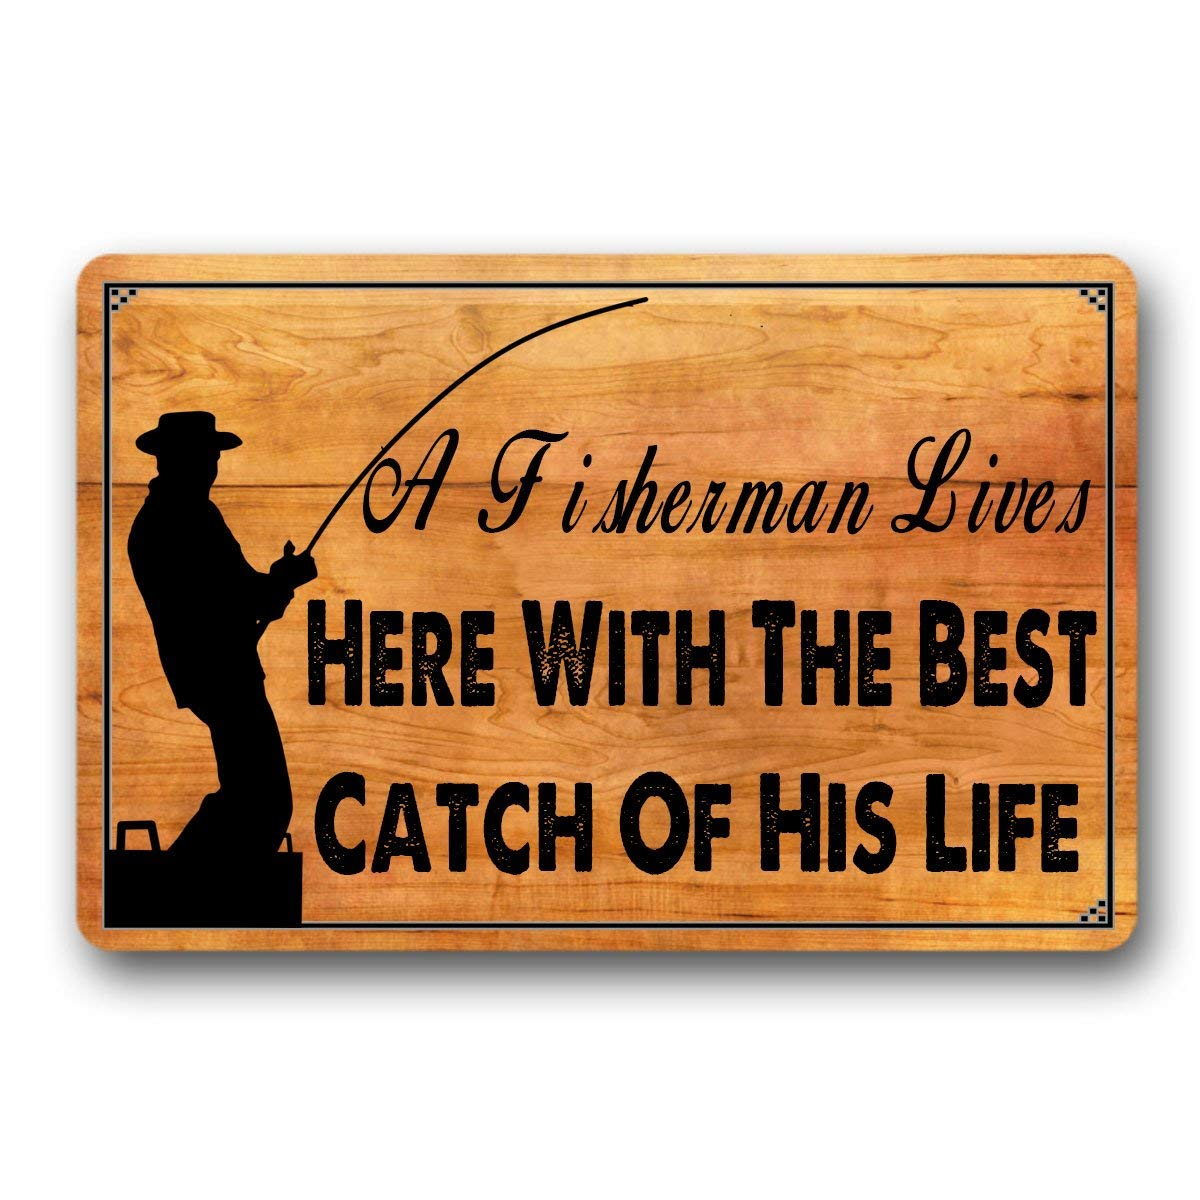 "Bernie Gresham Personal Design Doormat A Fisherman Lives Here with The Best Catch of His Life Entrance Mat Indoor Outdoor Mat Non-Woven Fabric Top 23.6""x15.7"""